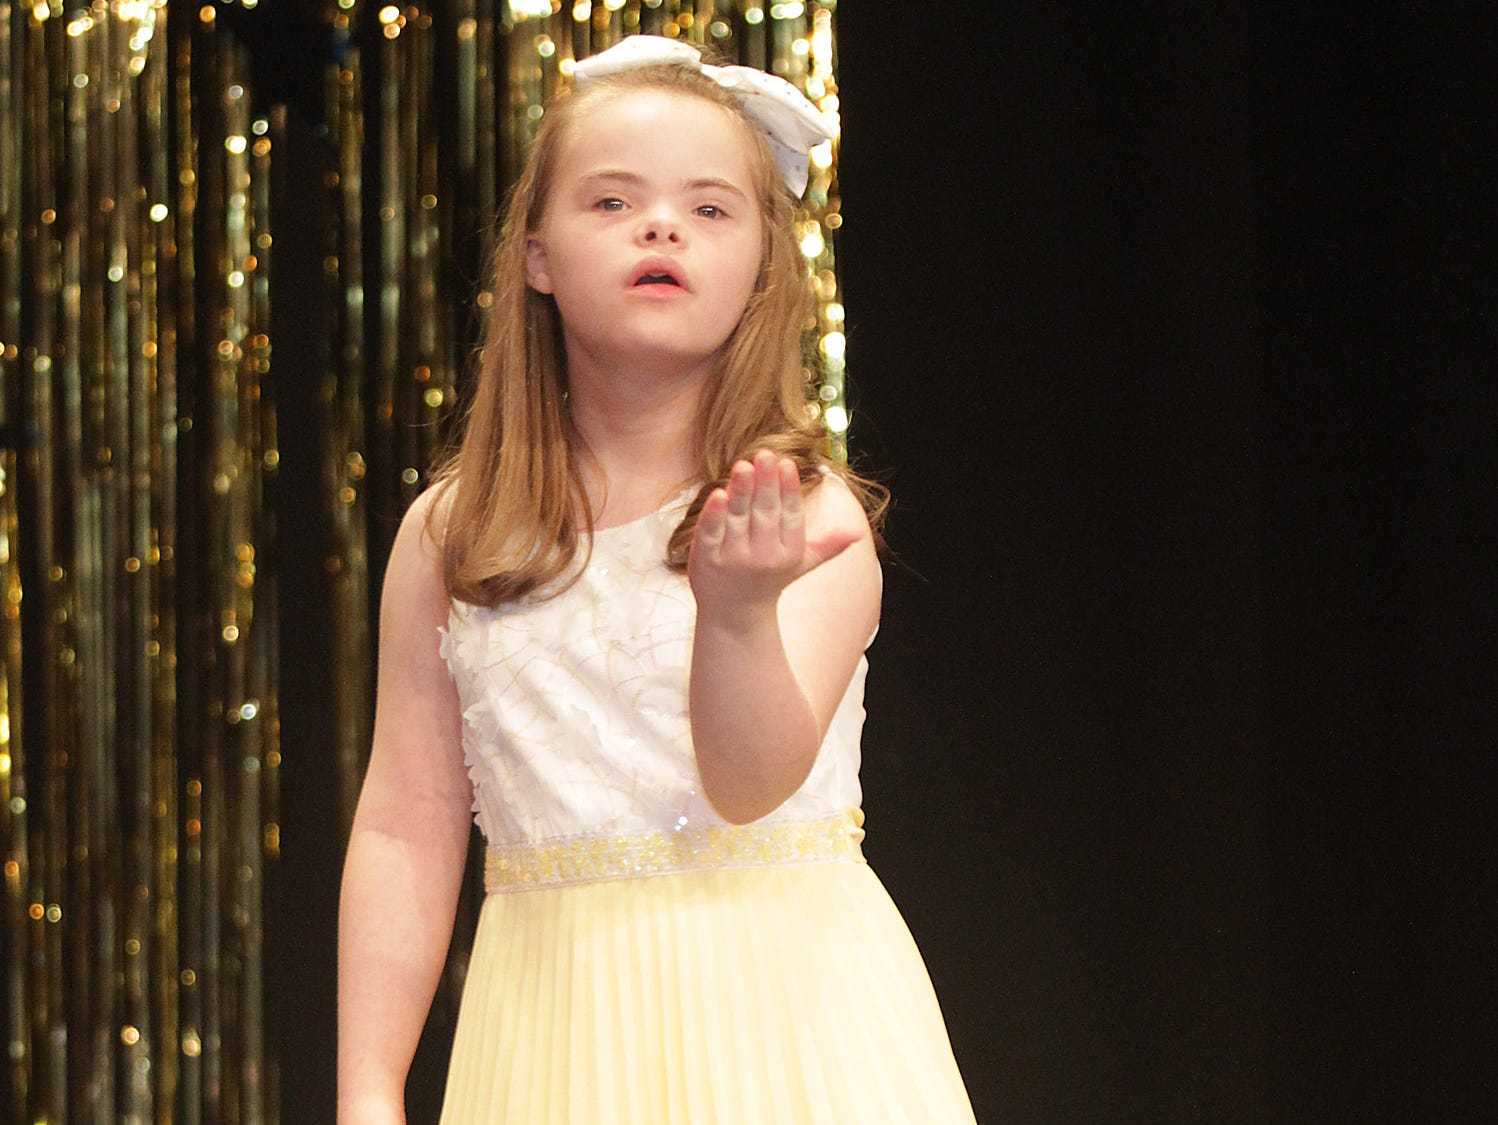 Lillian Satterfield (11) blows a kiss to the audience at The Sparkle Pageant at Pope John Paul II High School on Saturday, March 30, 2019.